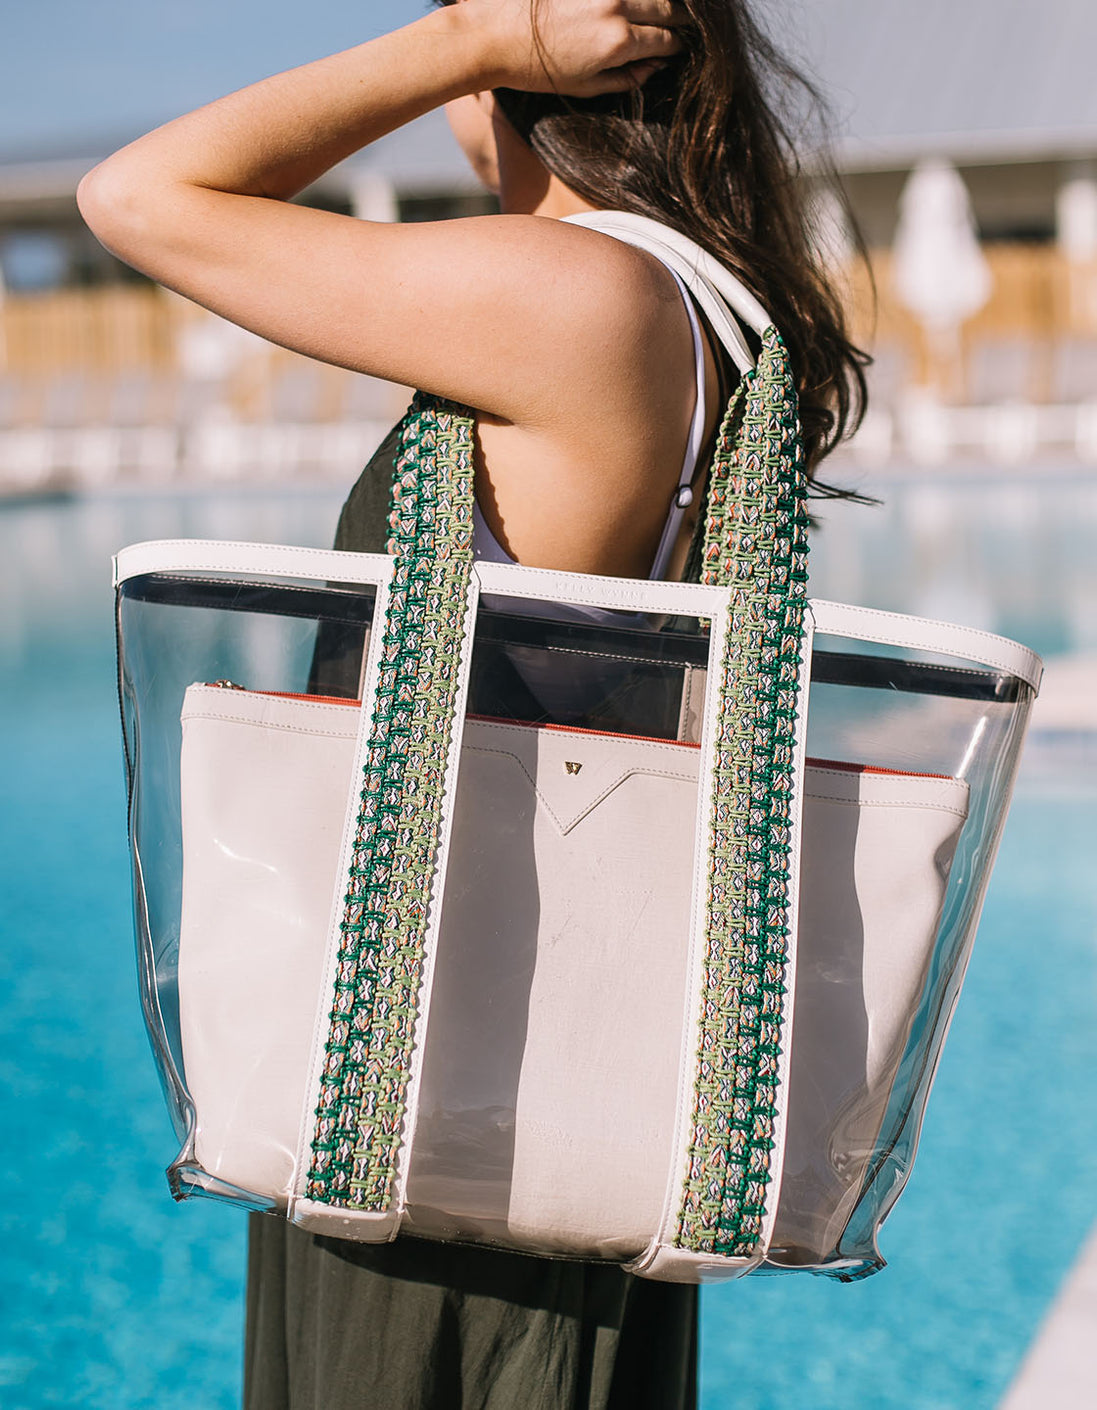 Bring on the Beach Bag in White/Grey